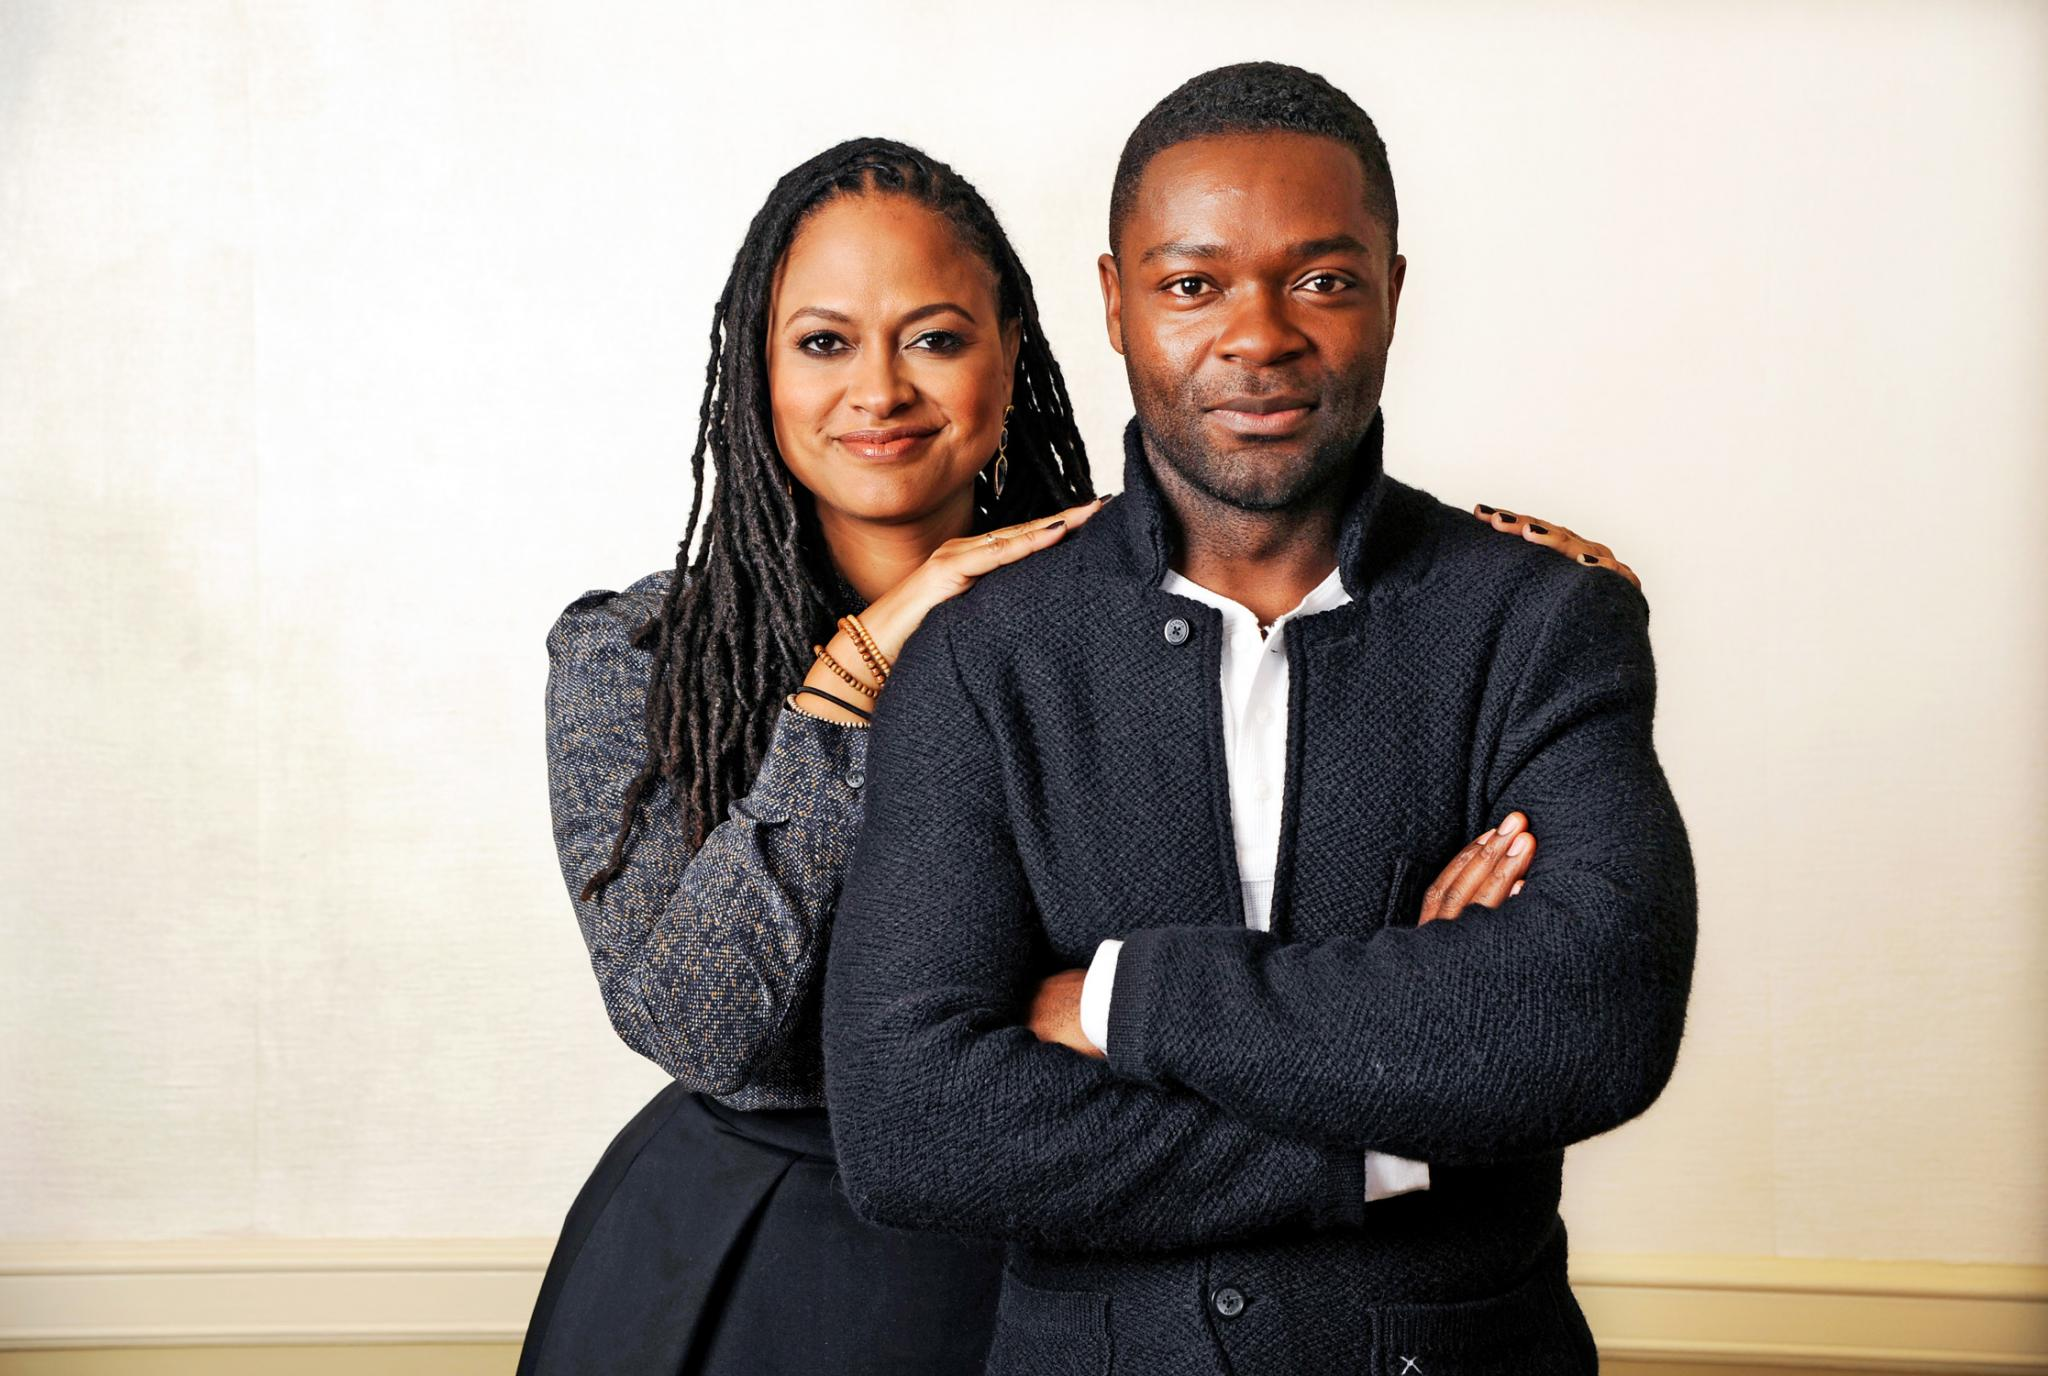 Ava Duvernay Shares Emotional Selma Outtake With David Oyelowo